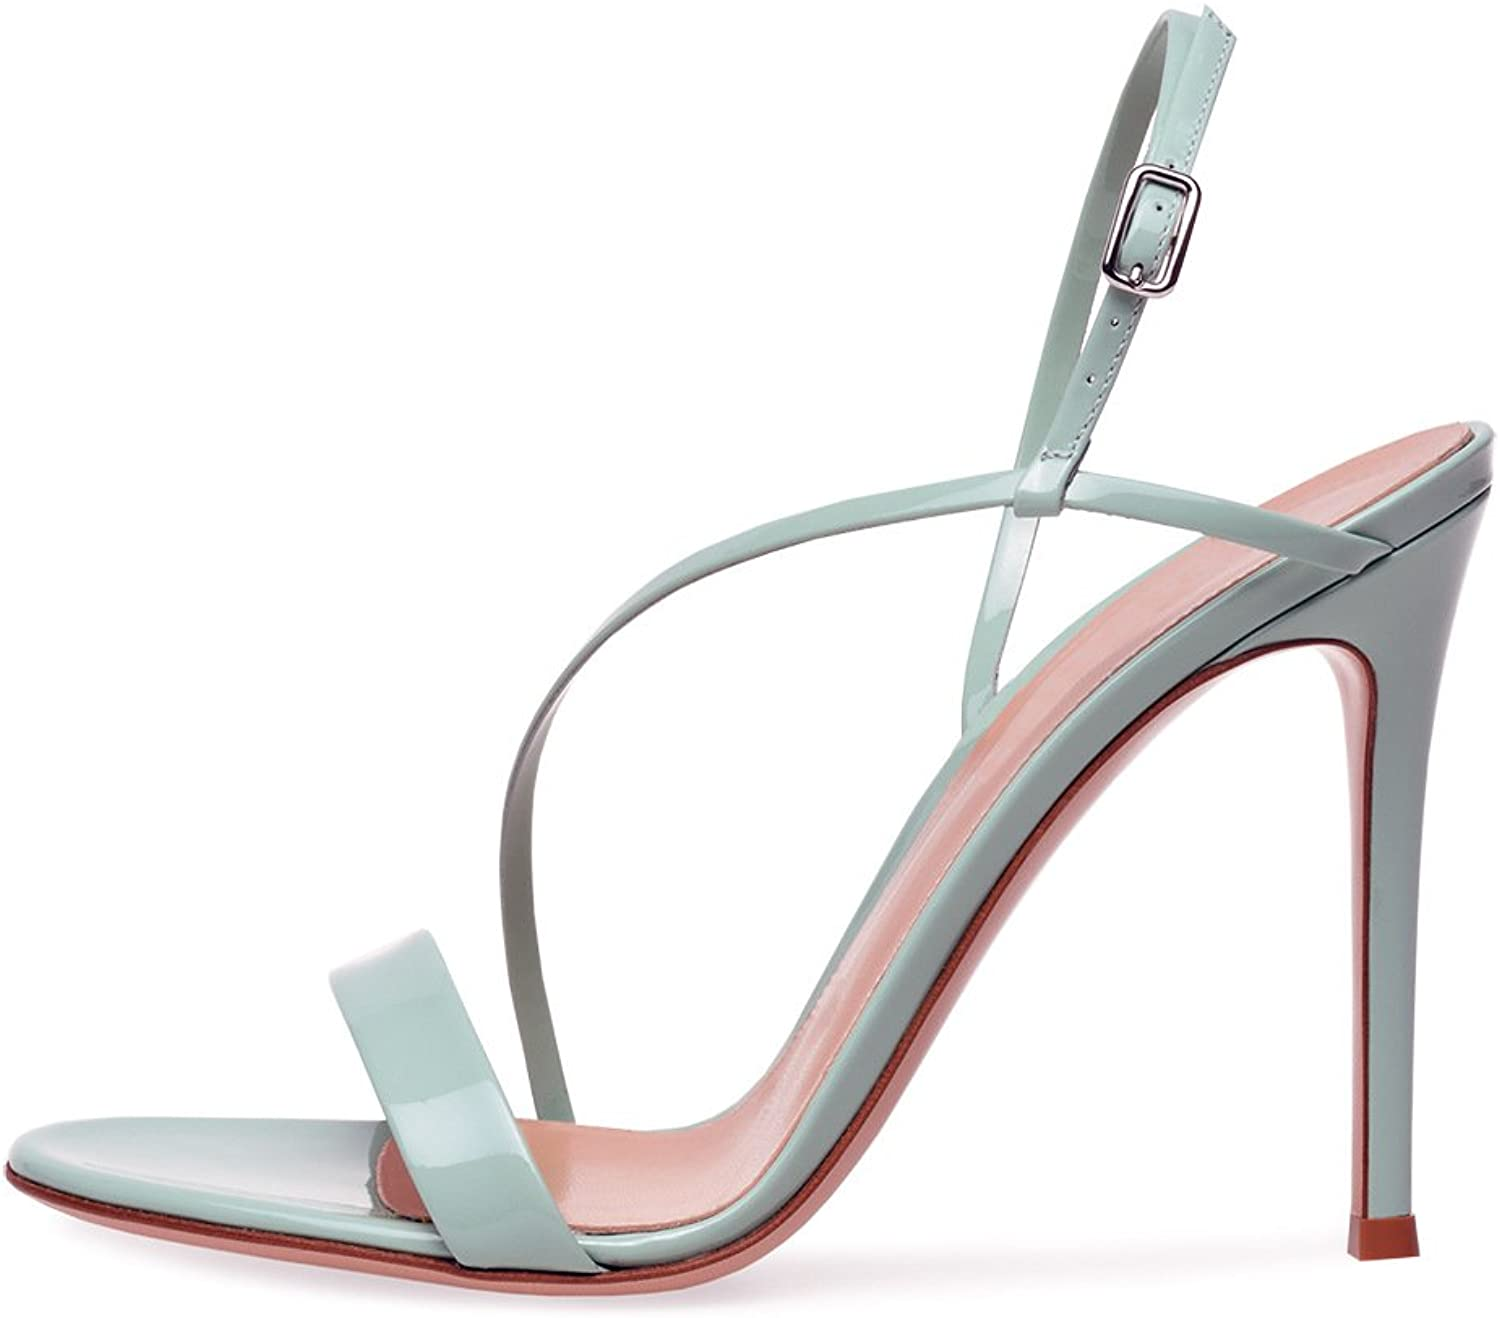 Exing Womens's shoes New European and American Ladies Sandals Fashion Super High Heel Sandals Peep Toe Dinner Party shoes Sandals